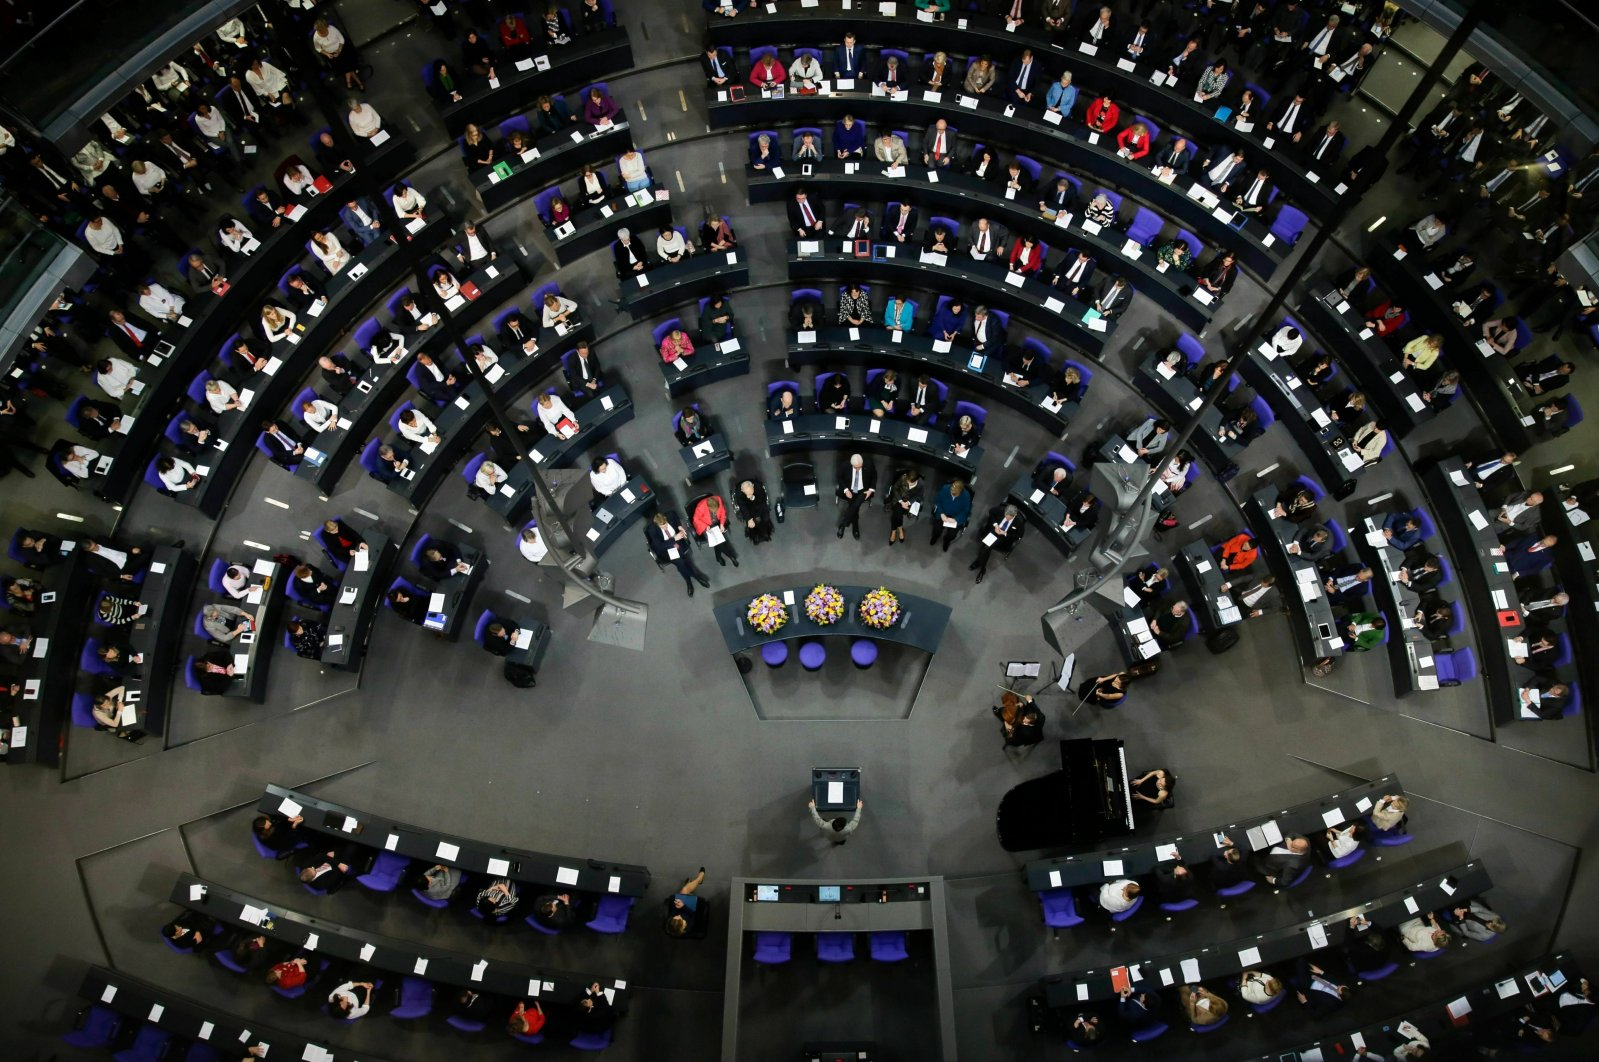 German lawmakers attend a special parliament session at the Reichstag building, host of the German federal parliament, Bundestag, in Berlin, Germany, Jan. 17, 2019. (AP File Photo)